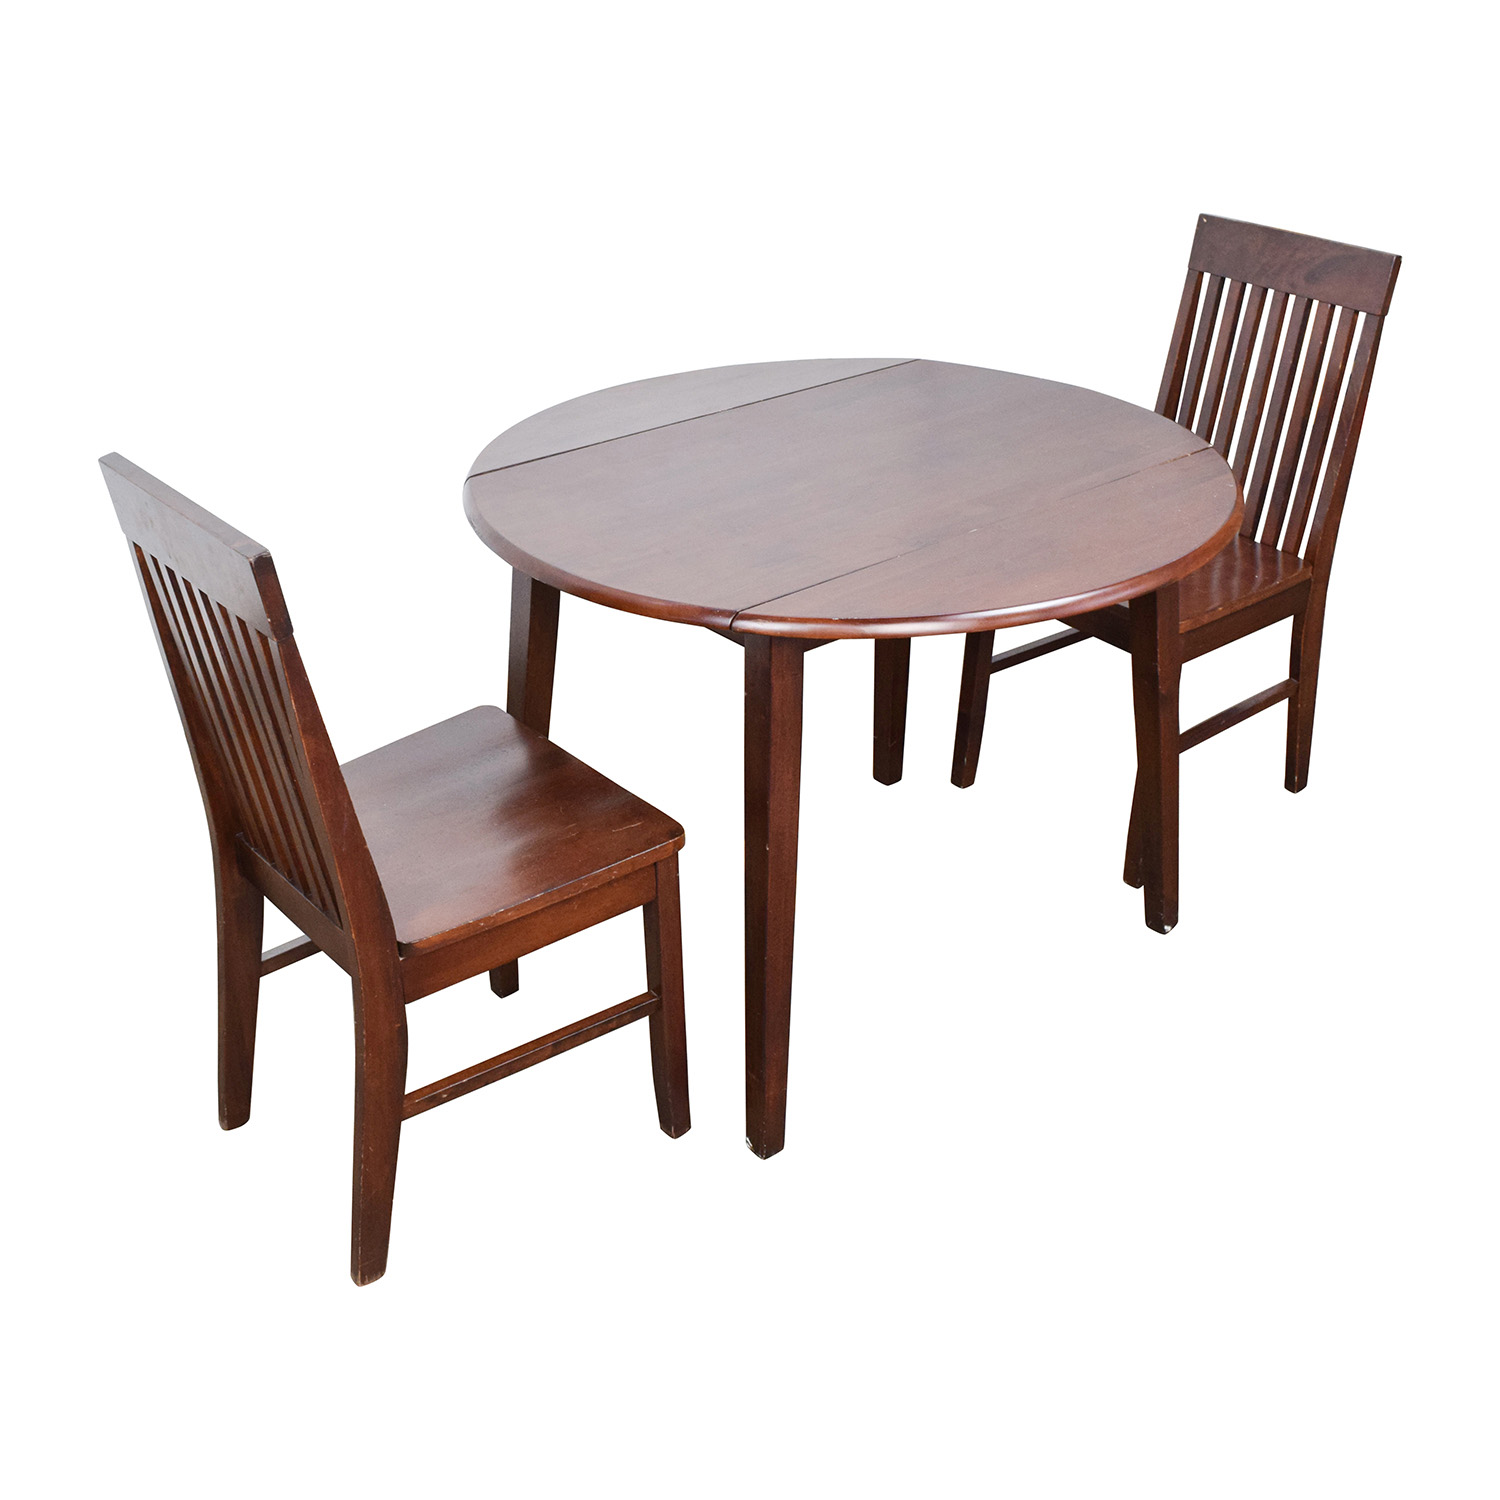 60 Off Round Dining Table With Folding Sides And Chairs